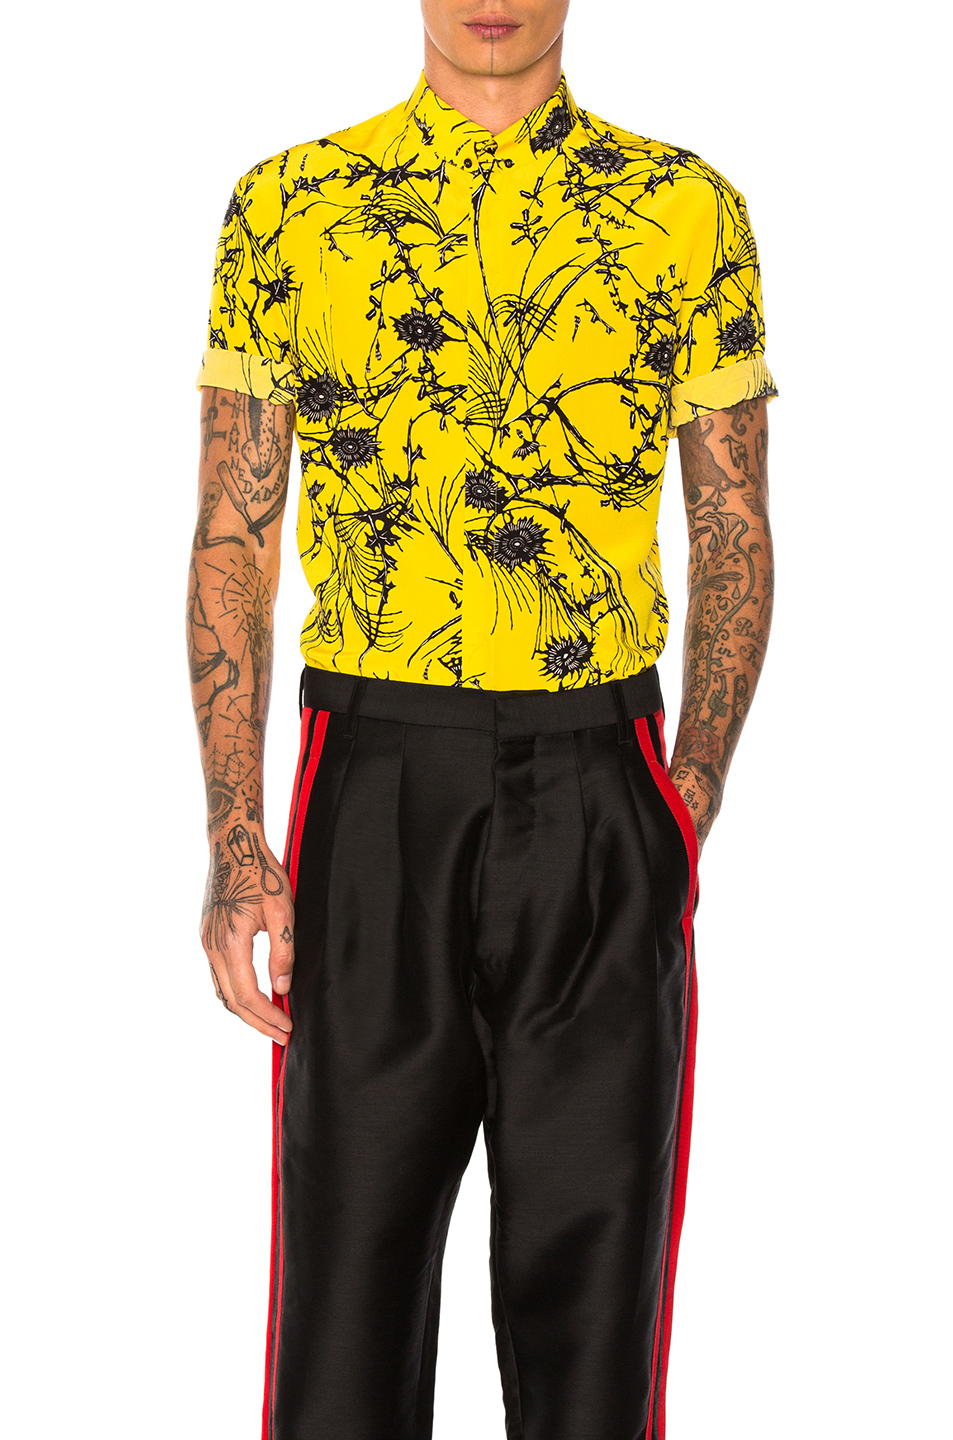 Haider Ackermann Short Sleeve Shirt in Yellow,Floral,Abstract